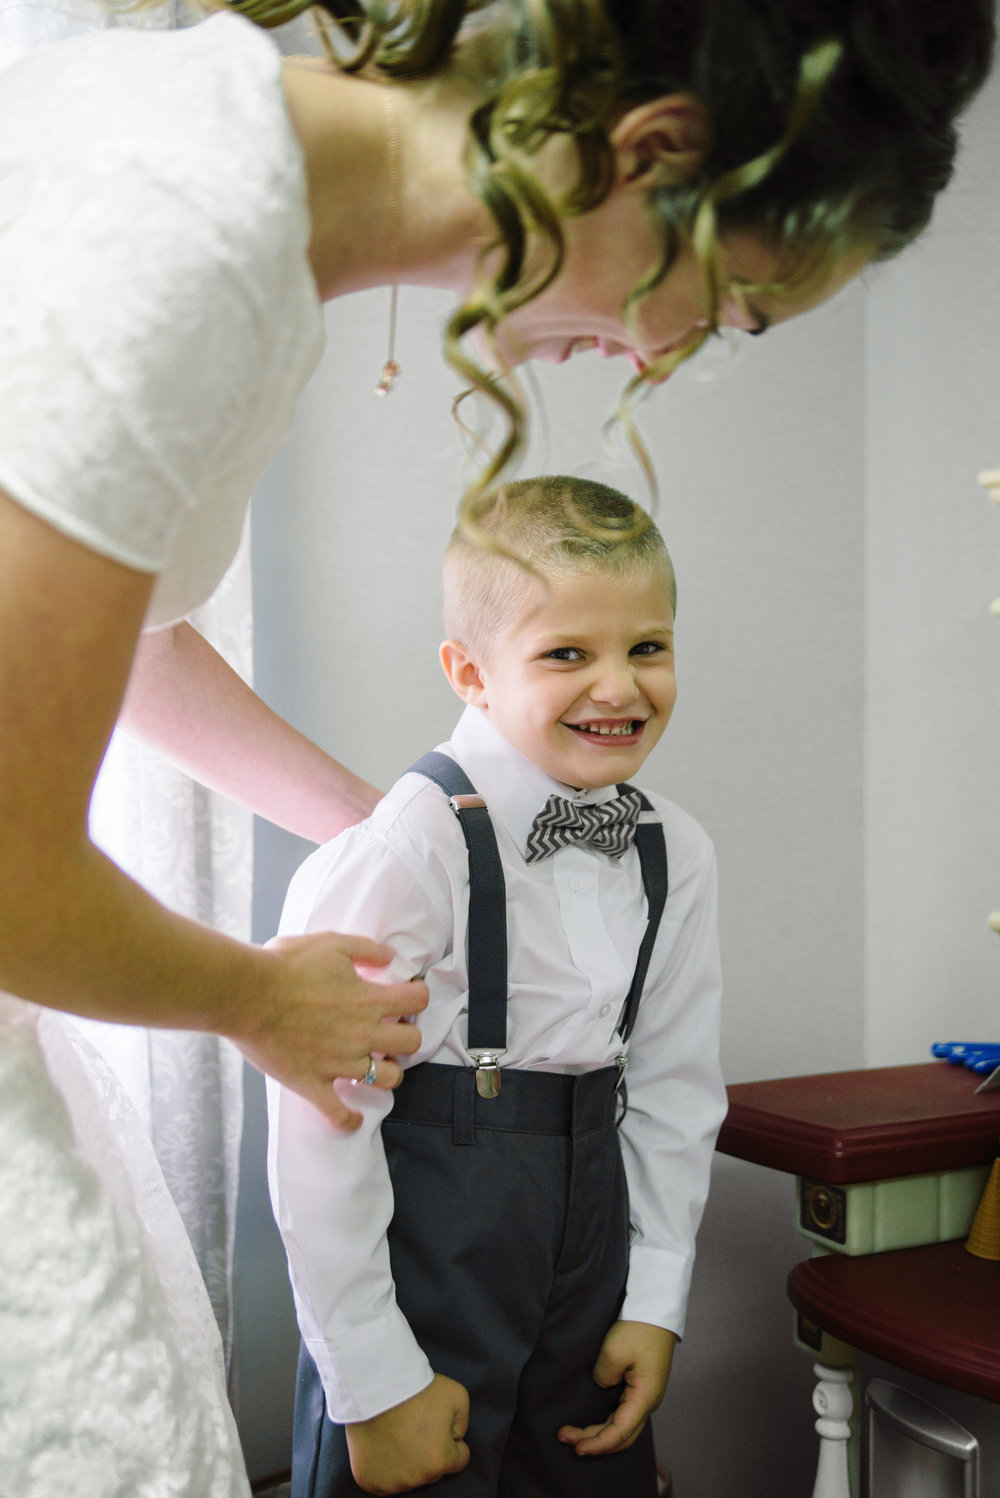 This mischievous fellow is our ring bearer